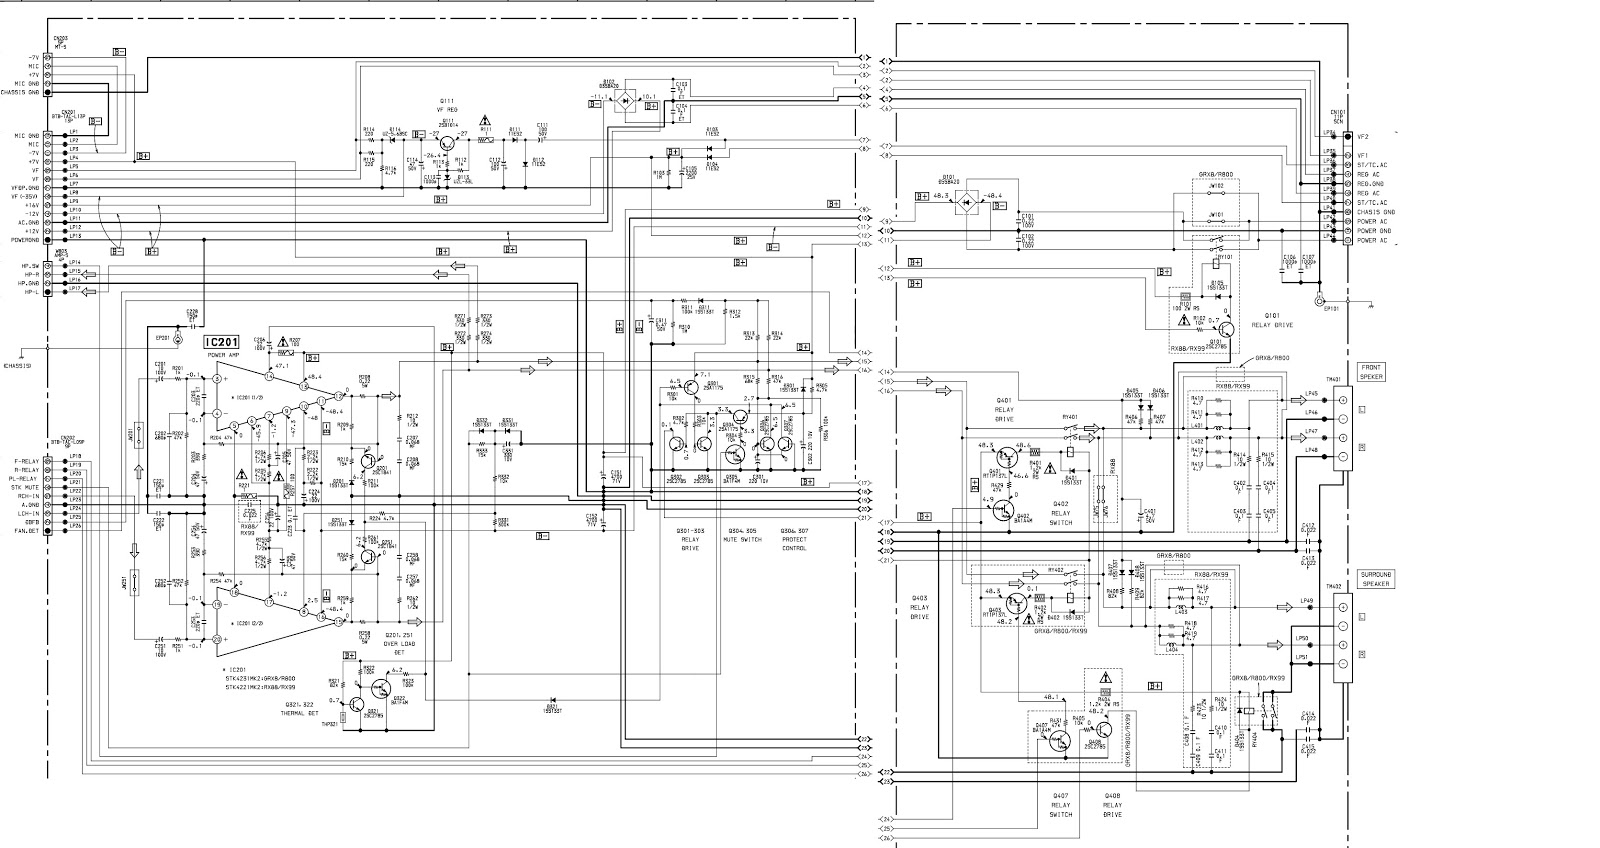 Sony Hcd Grx8 Aging Mode Power Amplifier Circuit Diagram